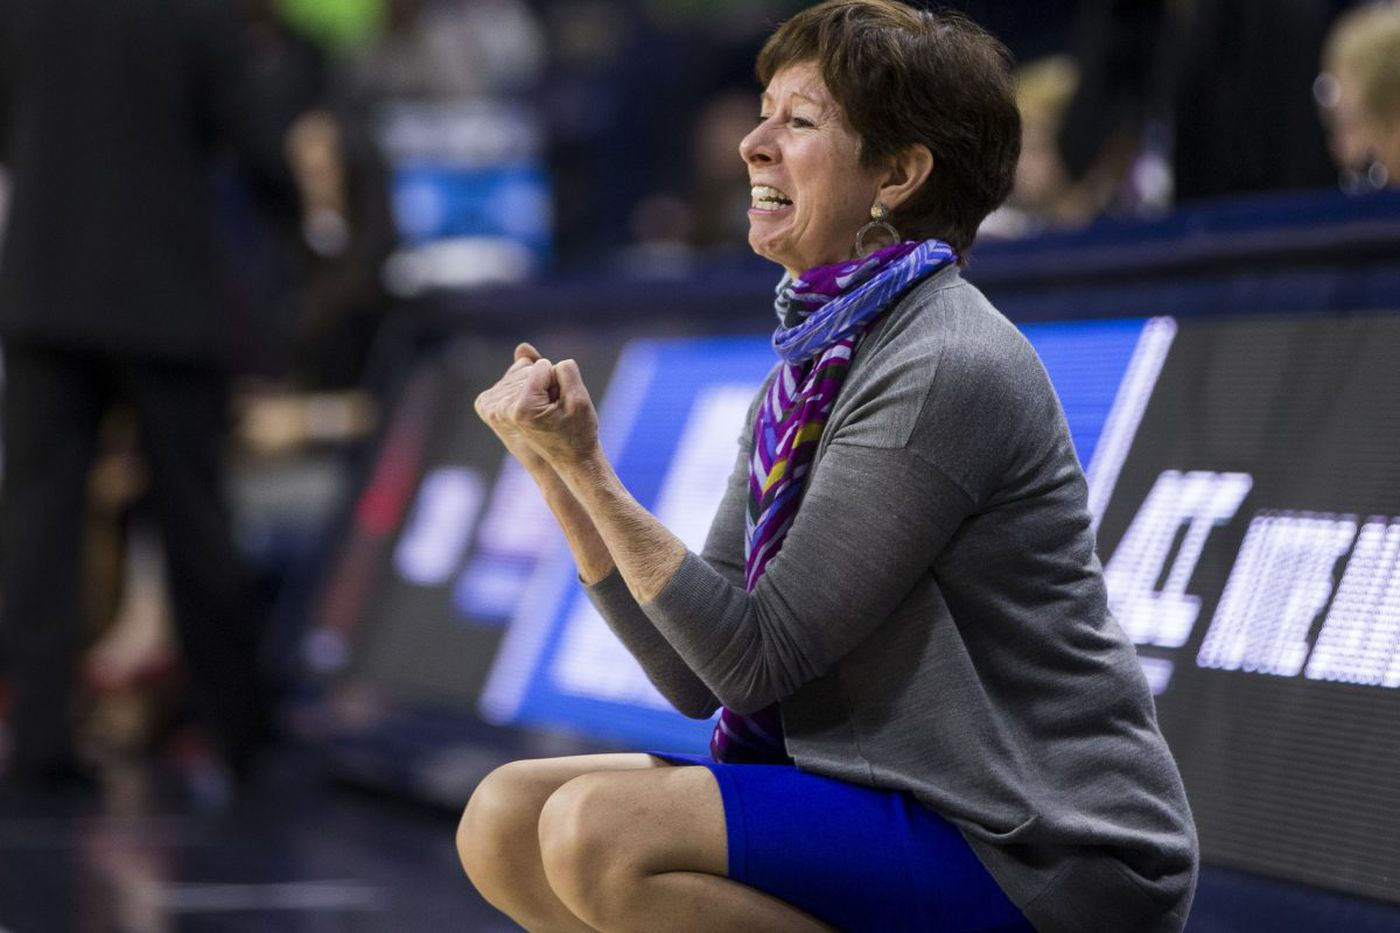 Notre Dame coach Muffet McGraw expects big challenges from Villanova